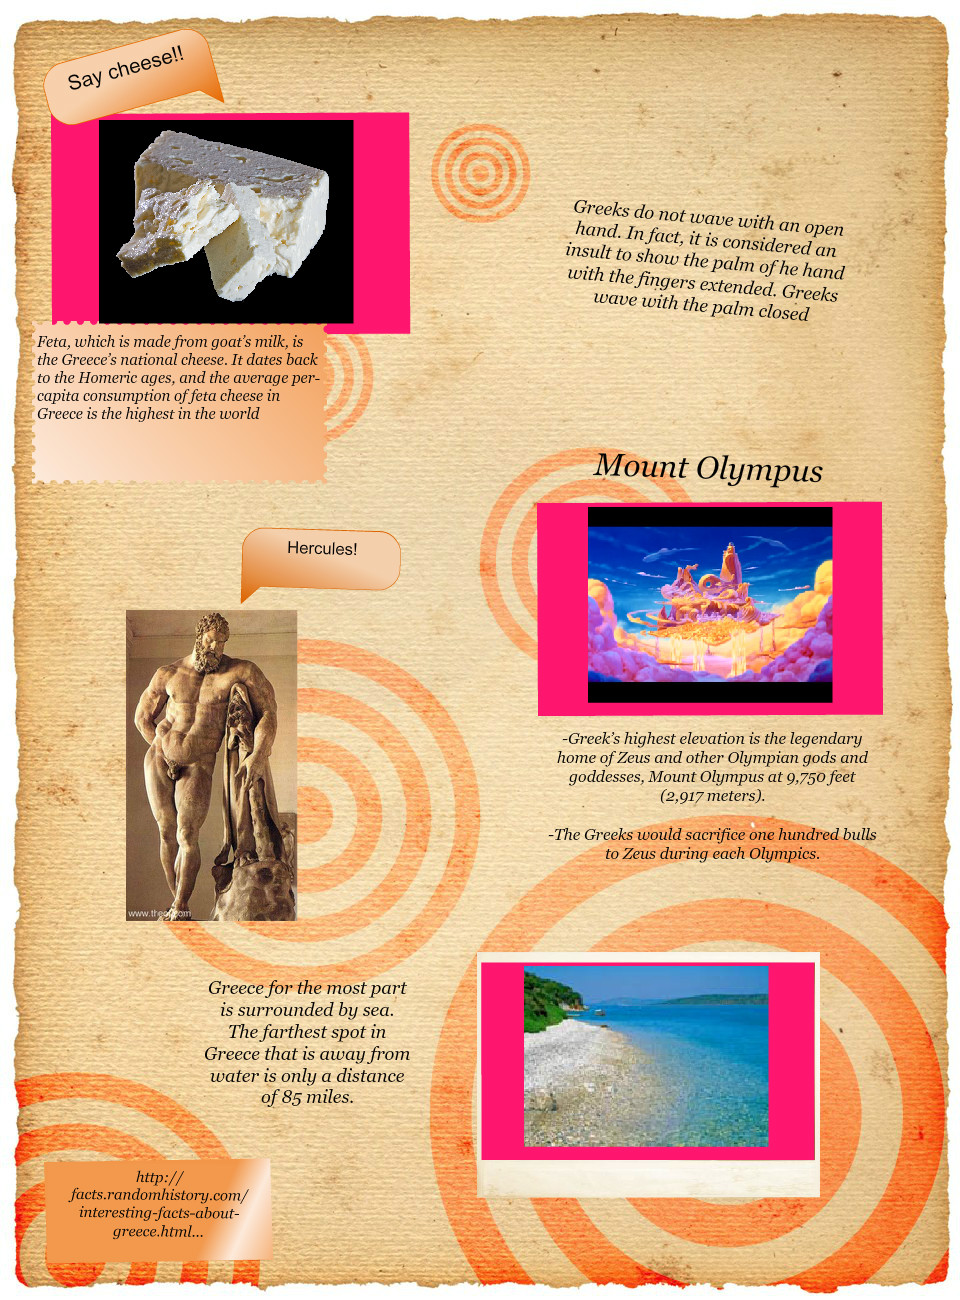 Greece-Chance-2: text, images, music, video | Glogster EDU